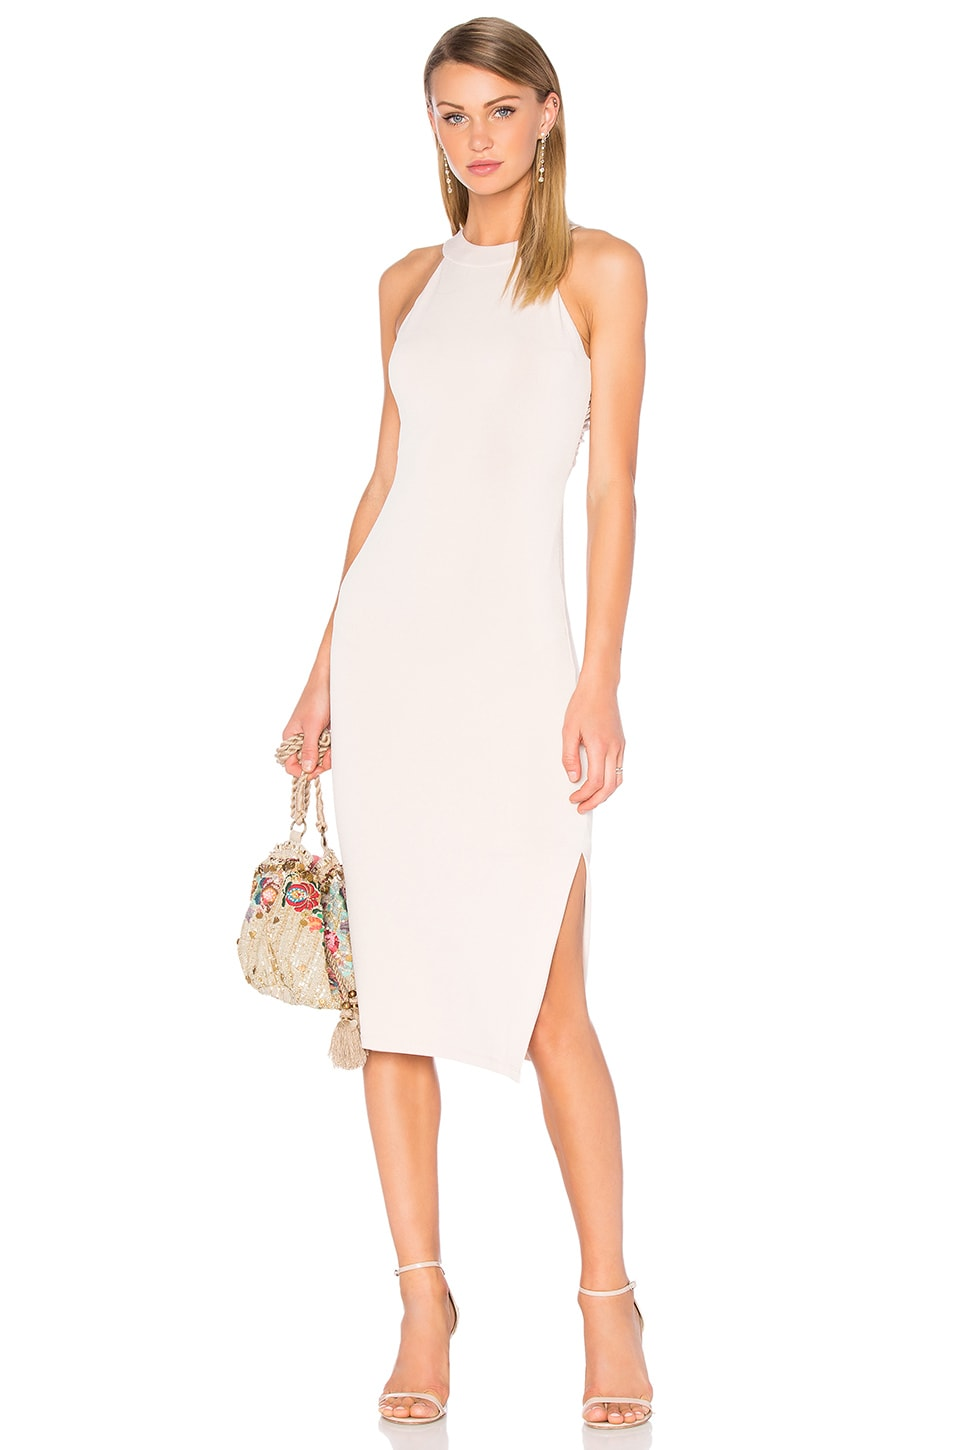 Lumi Cross Back Dress by Alice + Olivia